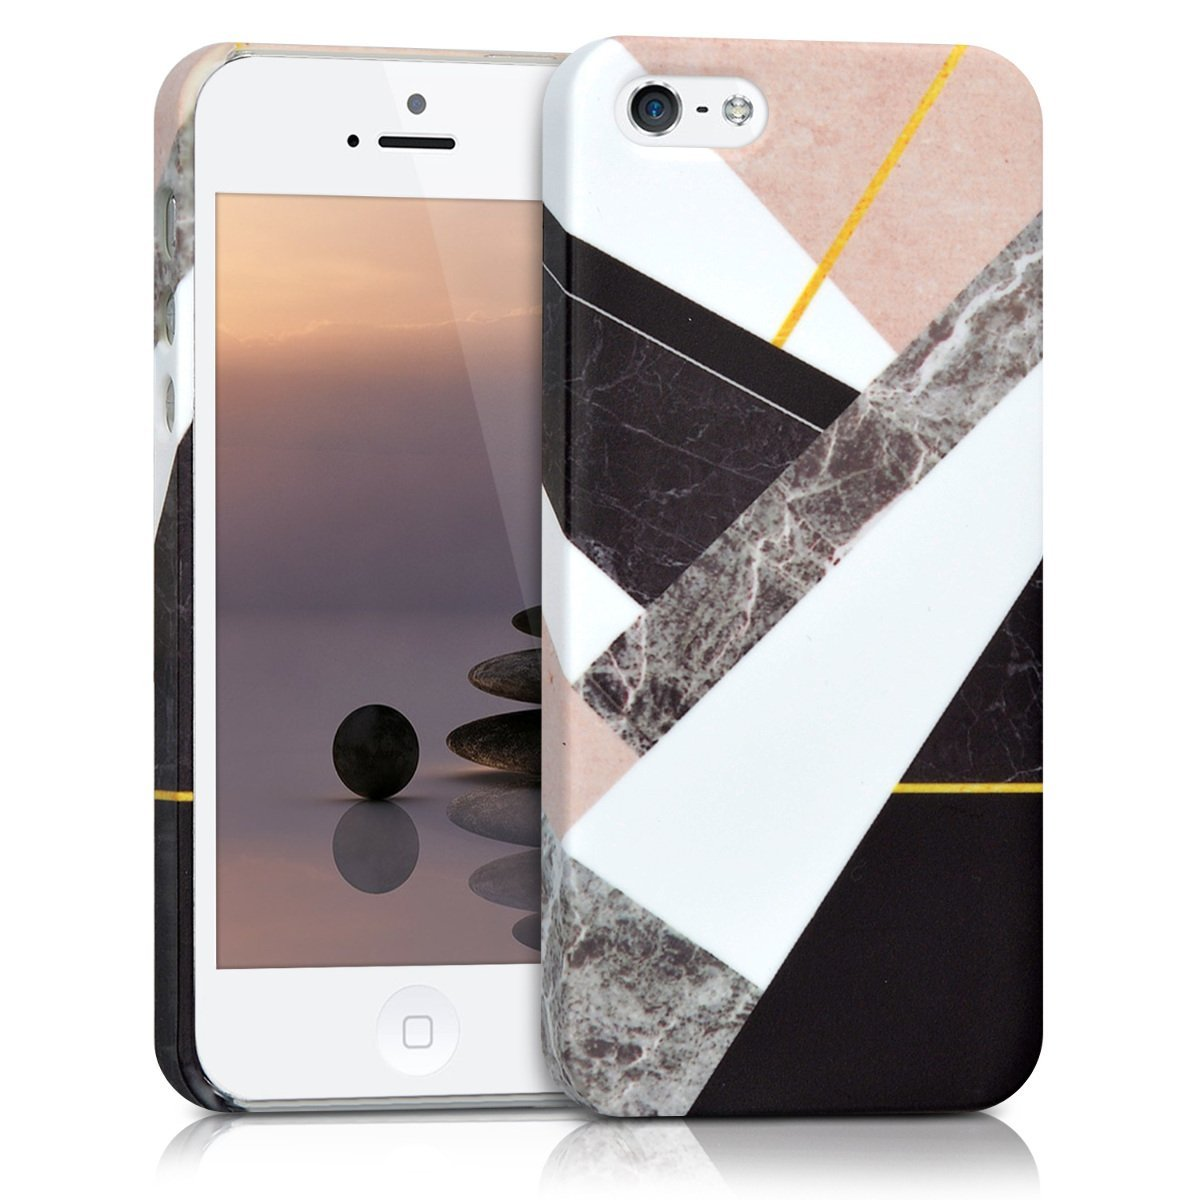 KW Σκληρή Θήκη iPhone SE/5S/5 - Marble Mix (41318.01)